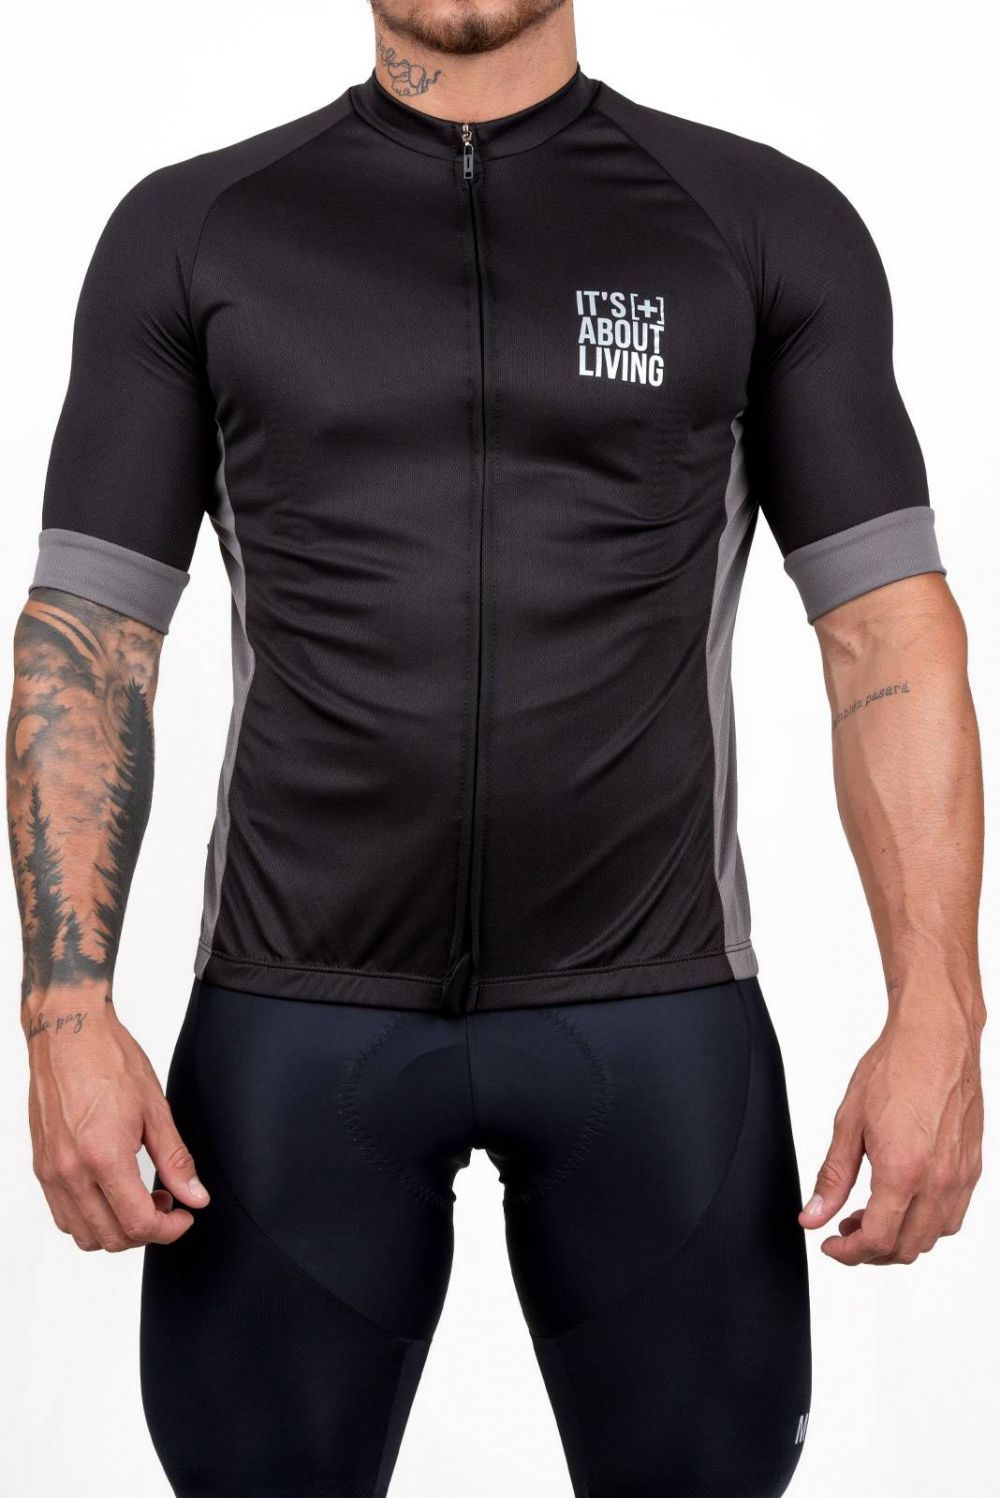 ACTIVE CLASSIC BLACK JERSEY AC2200H